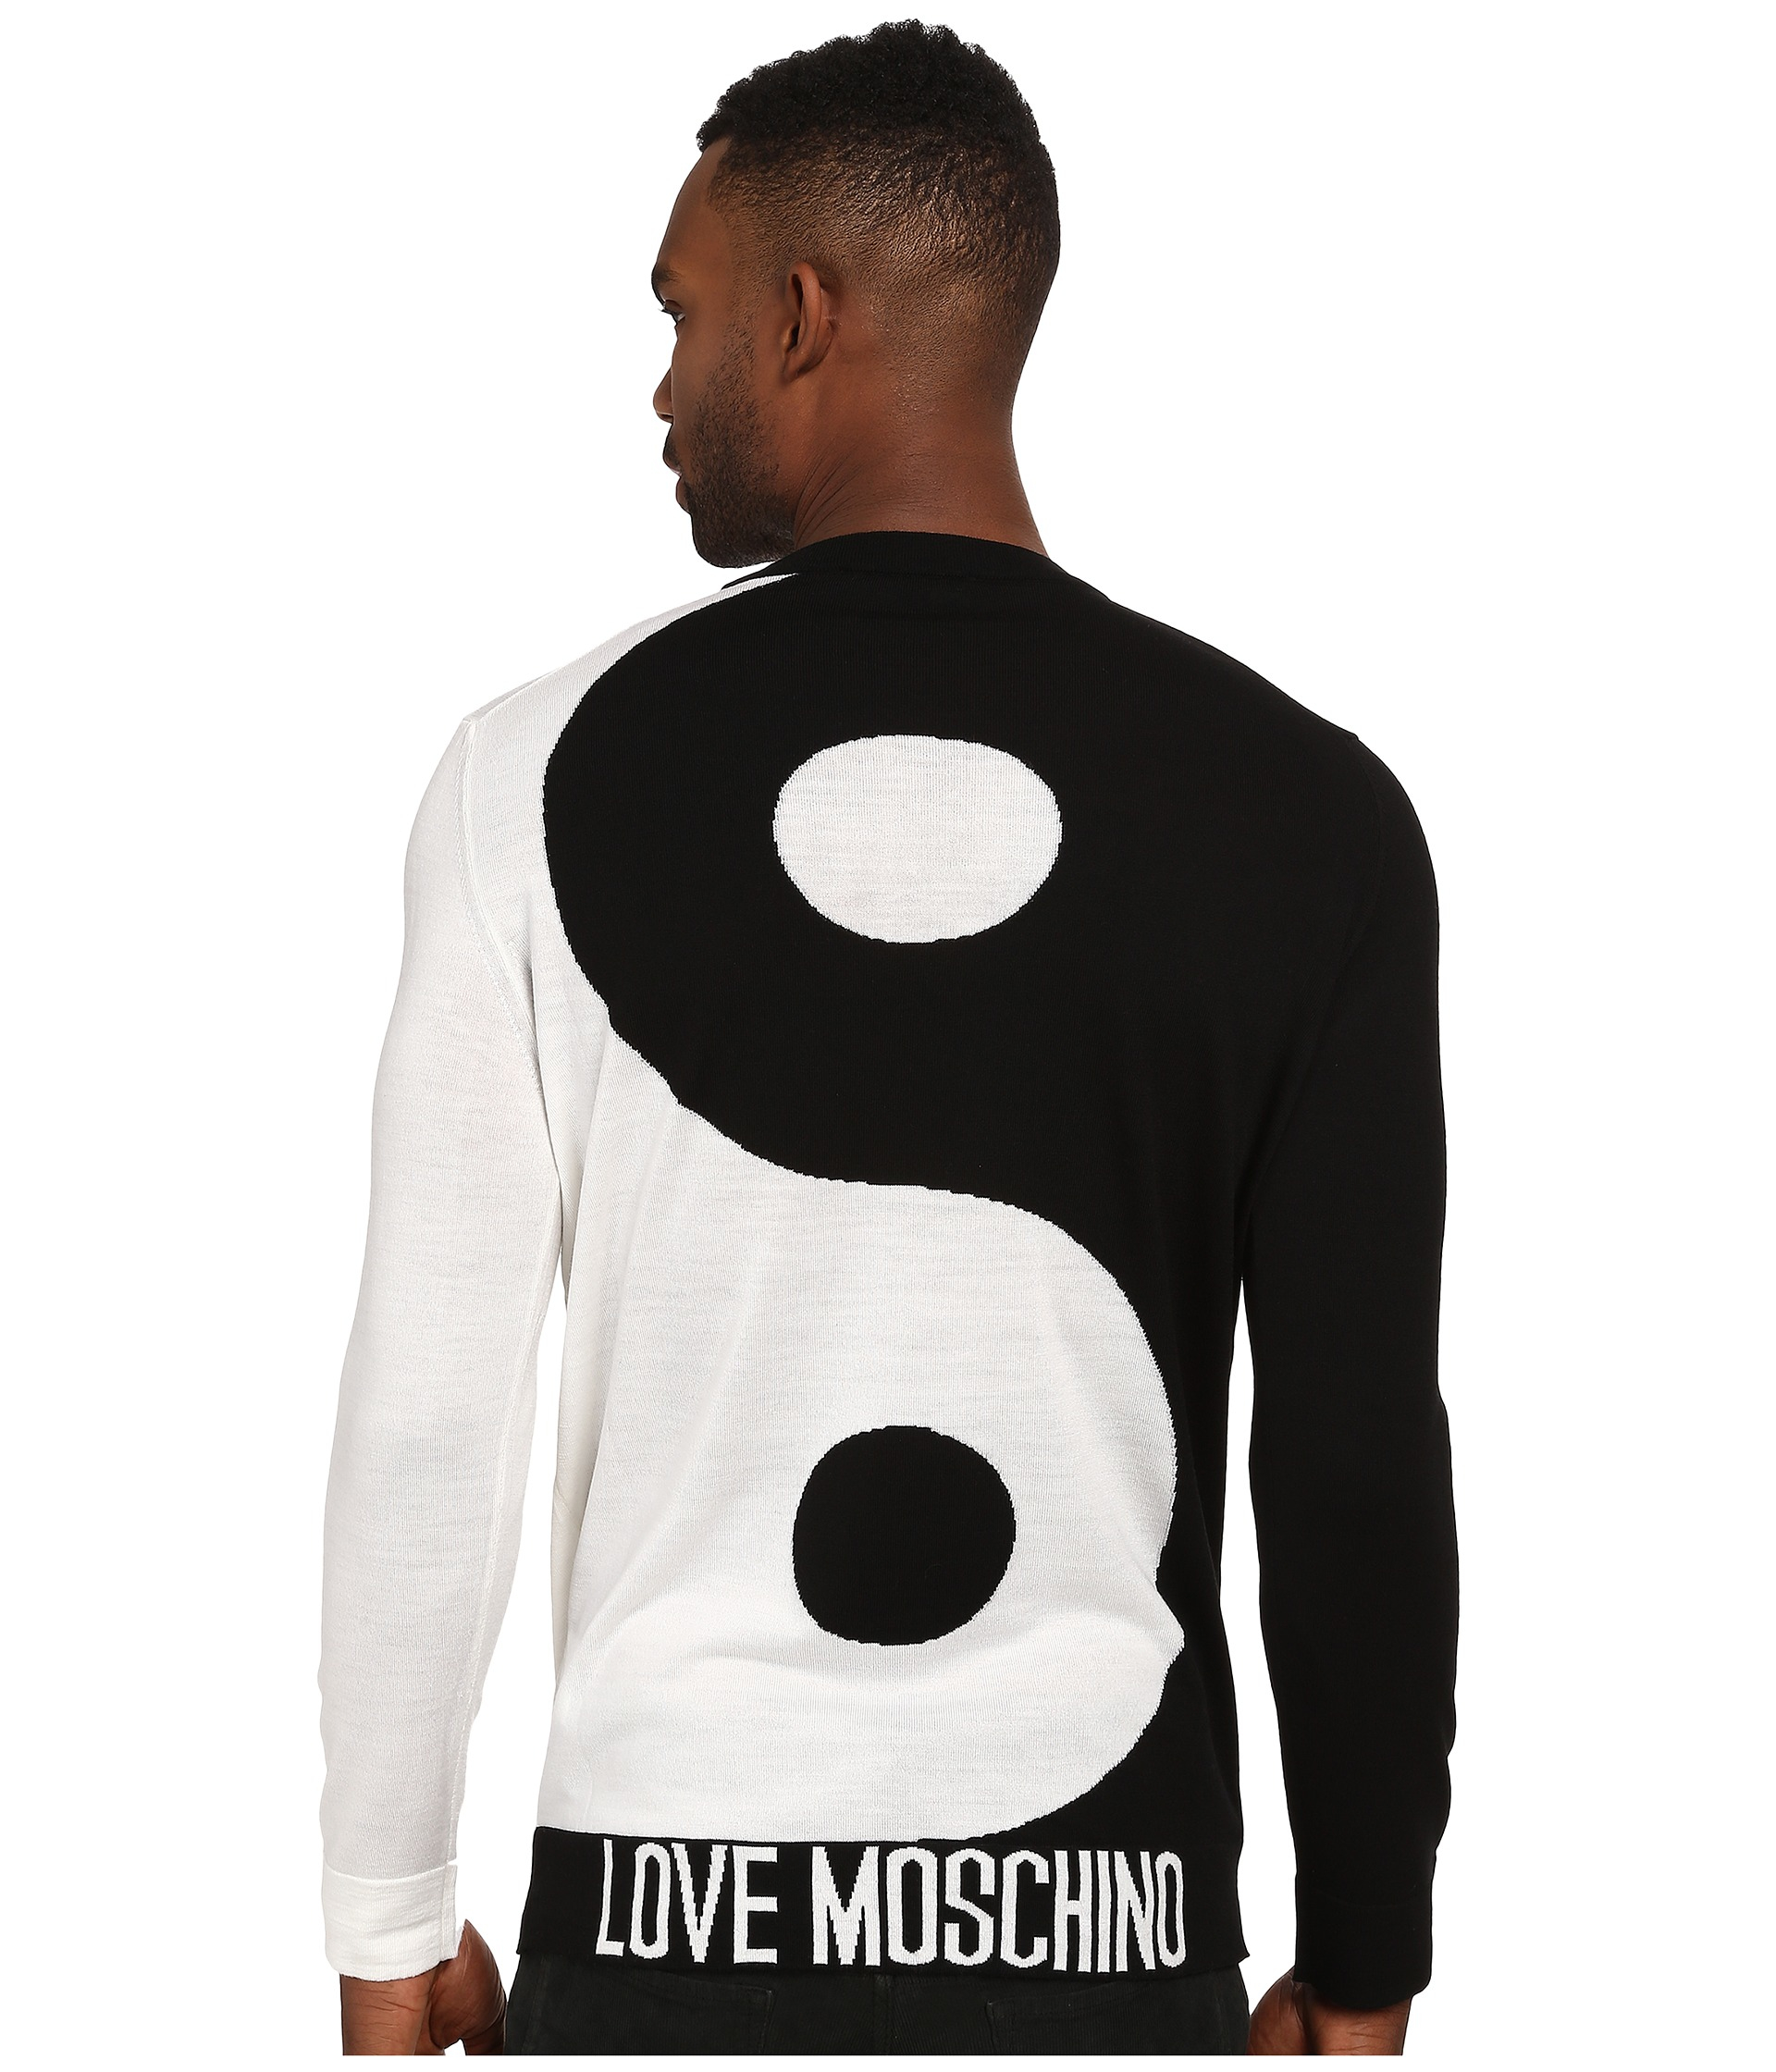 92e951e518d Love Moschino Yin & Yang Long Sleeve Tee in Black for Men - Lyst